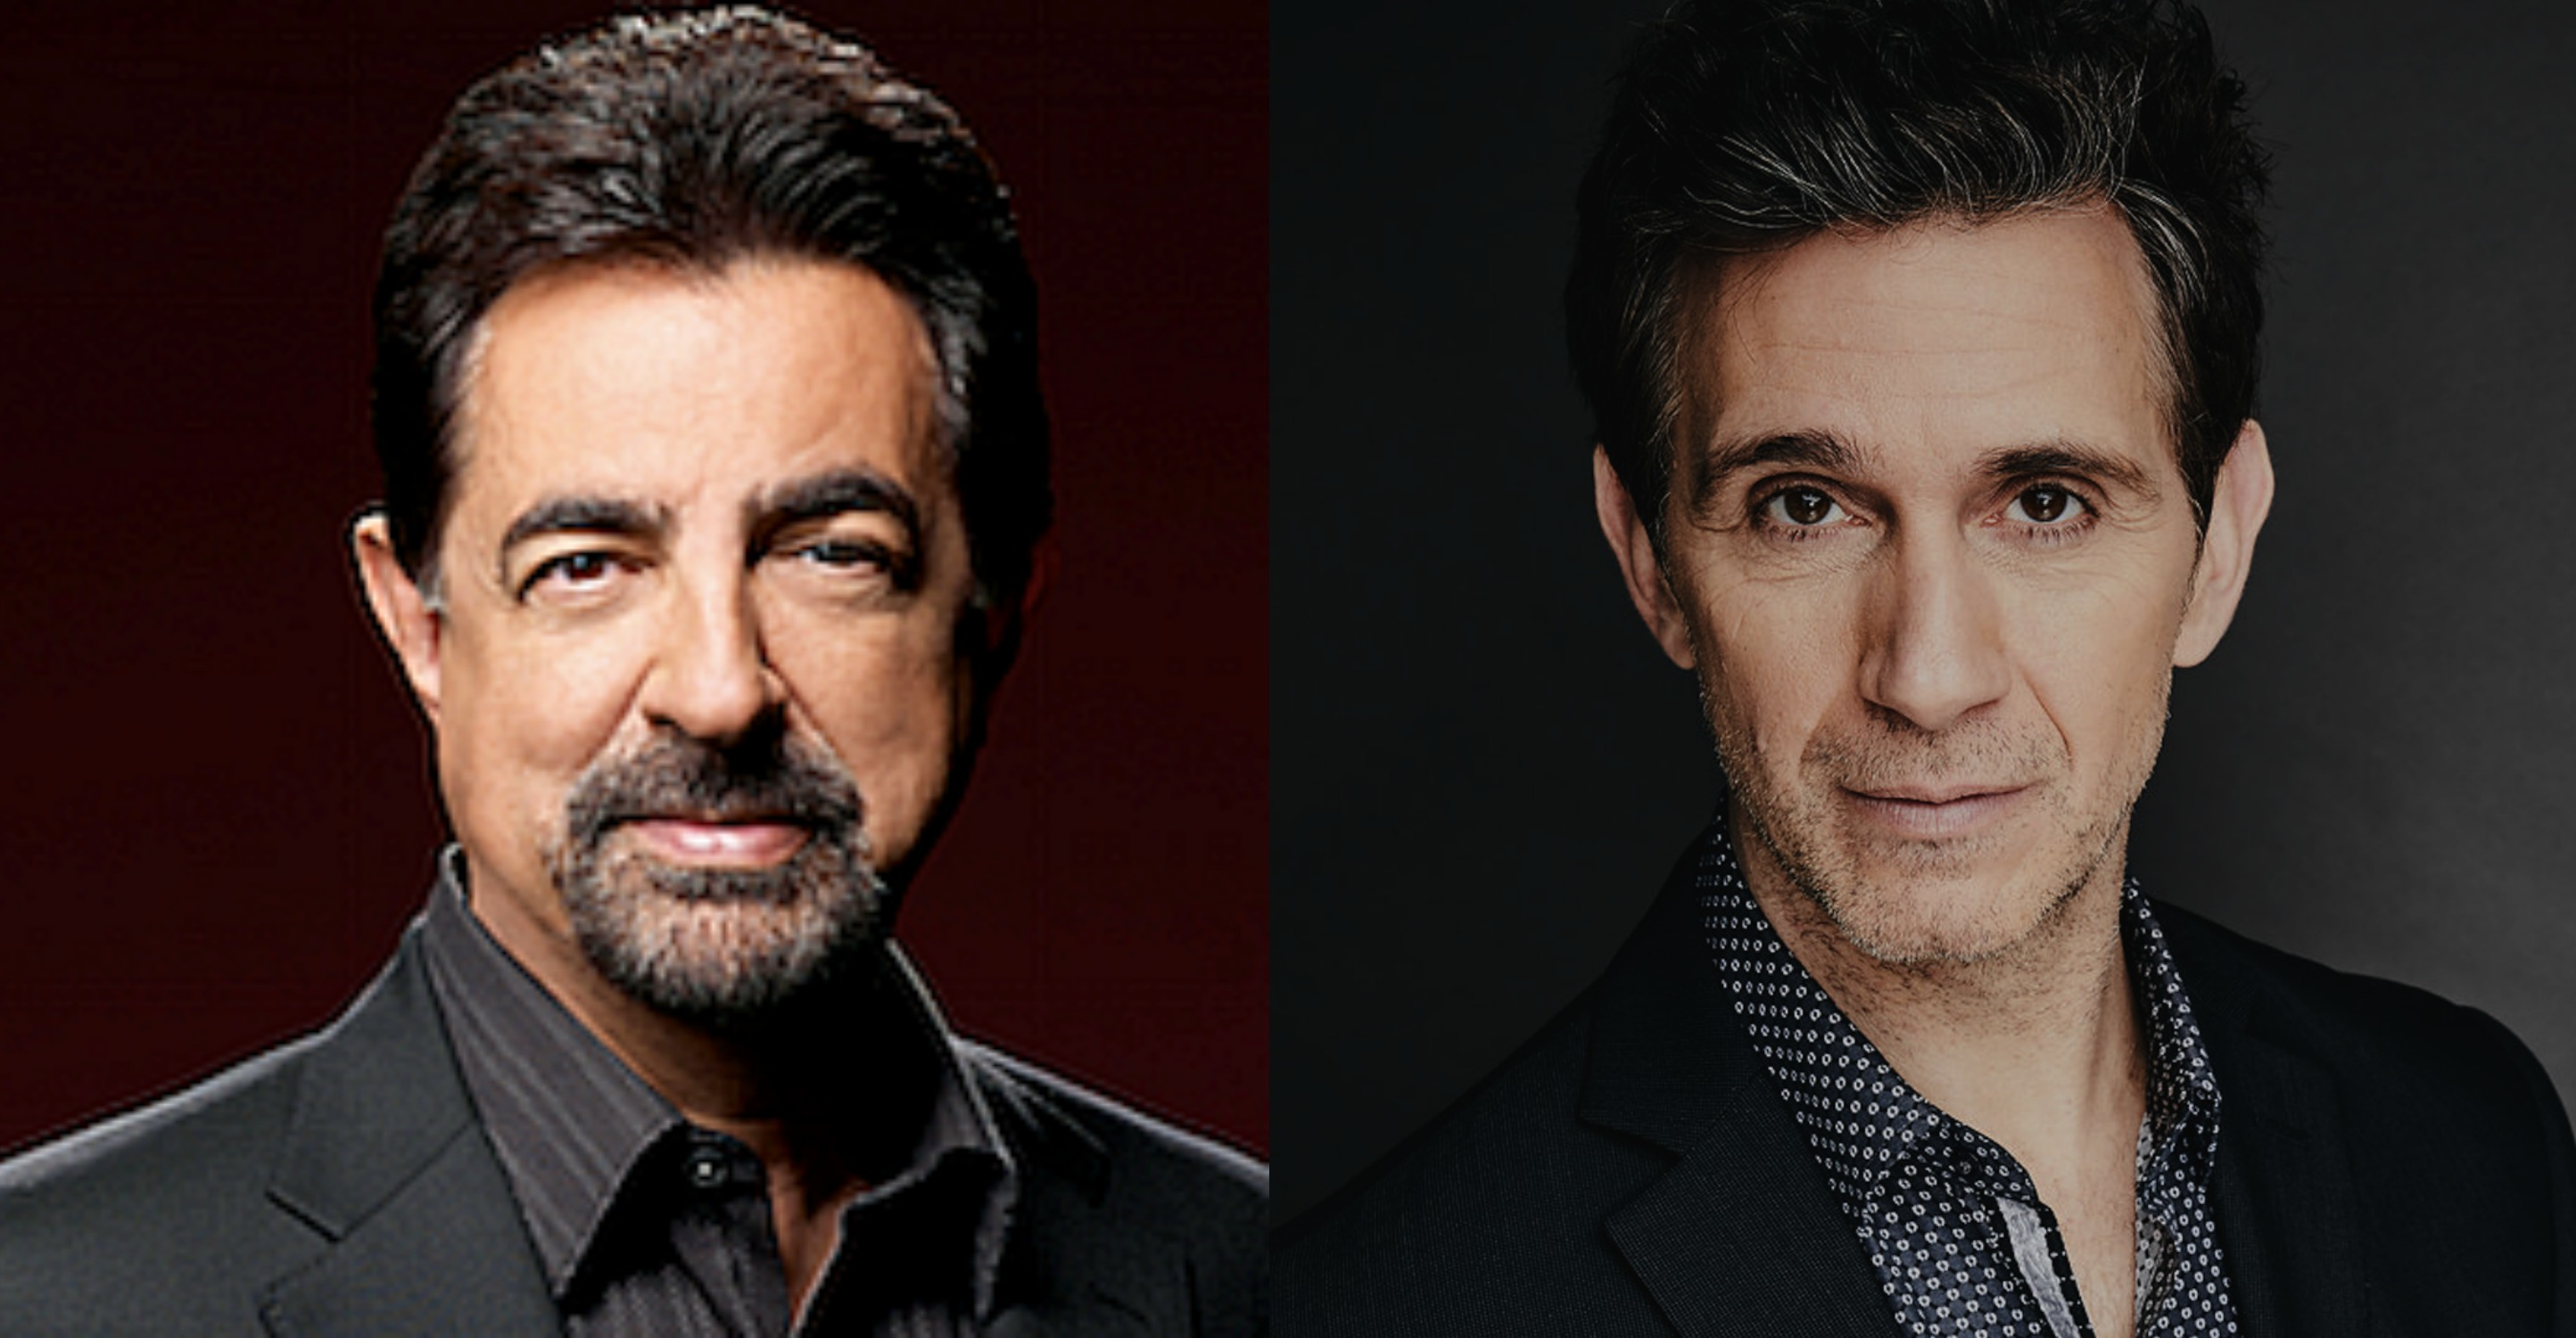 EXECUTIVE PRODUCERS RONNIE MARMO AND JOE MANTEGNA BRING A WORLD PREMIERE PLAY TO LA AND RAISE AUTISM AWARENESS